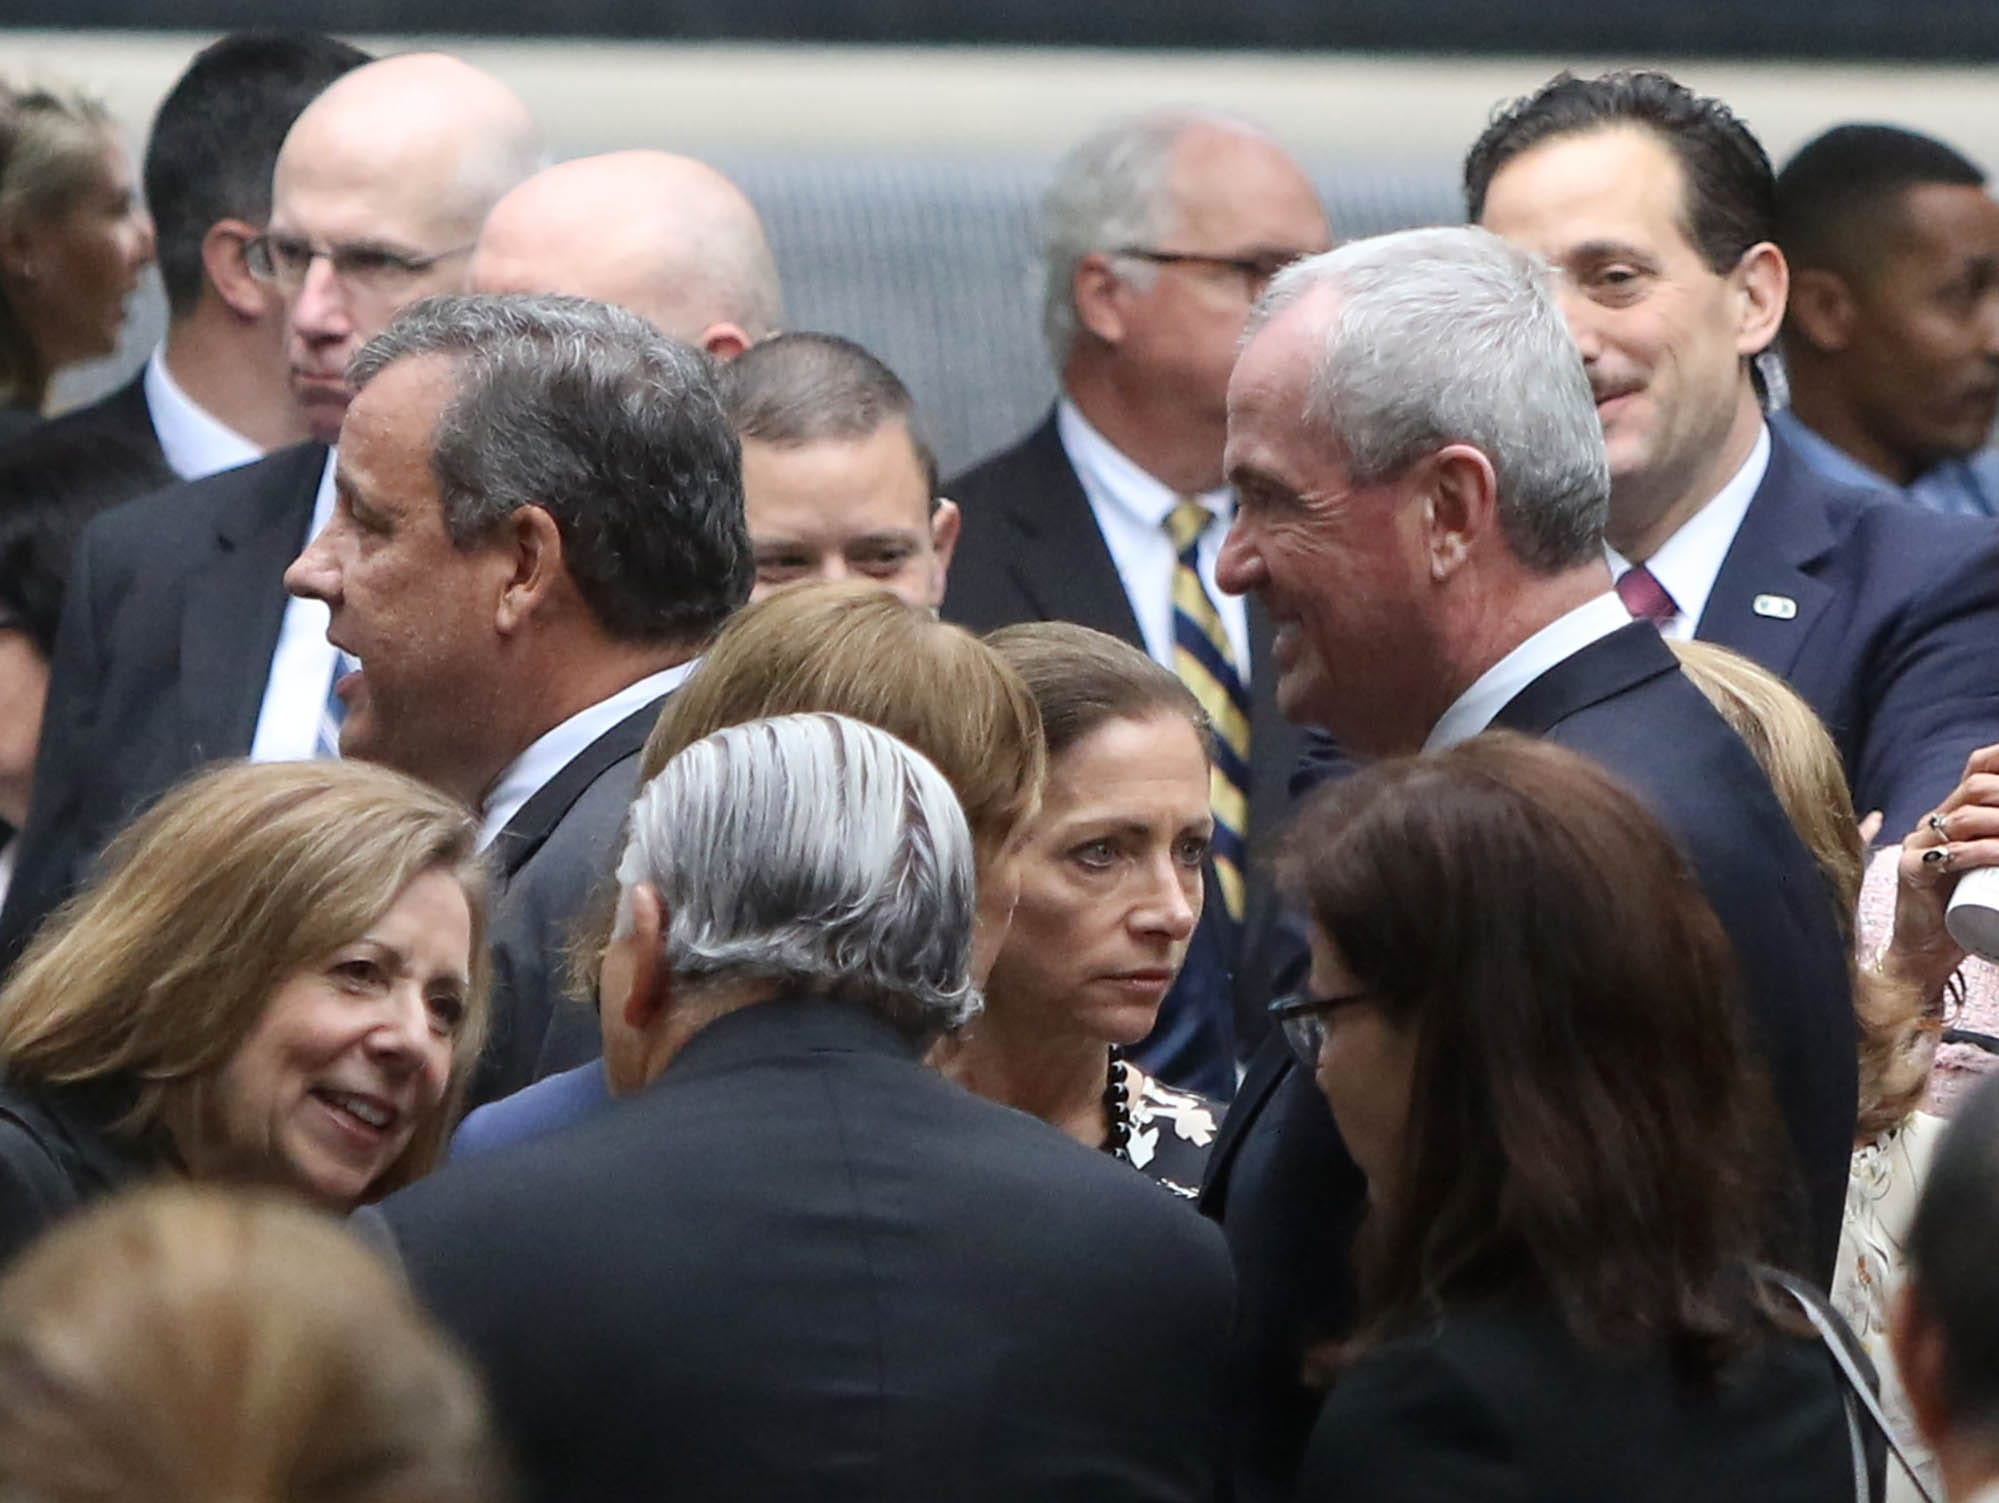 Former New Jersey Governor Chris Christie and present New Jersey Governor Phil Murphy prior to the ceremonies at the National September 11 Memorial observing the 17th anniversary of the attacks that killed people in Manhattan, the Pentagon, Flight 93 and honoring those who died in the 1993 World Trade Center bombing.